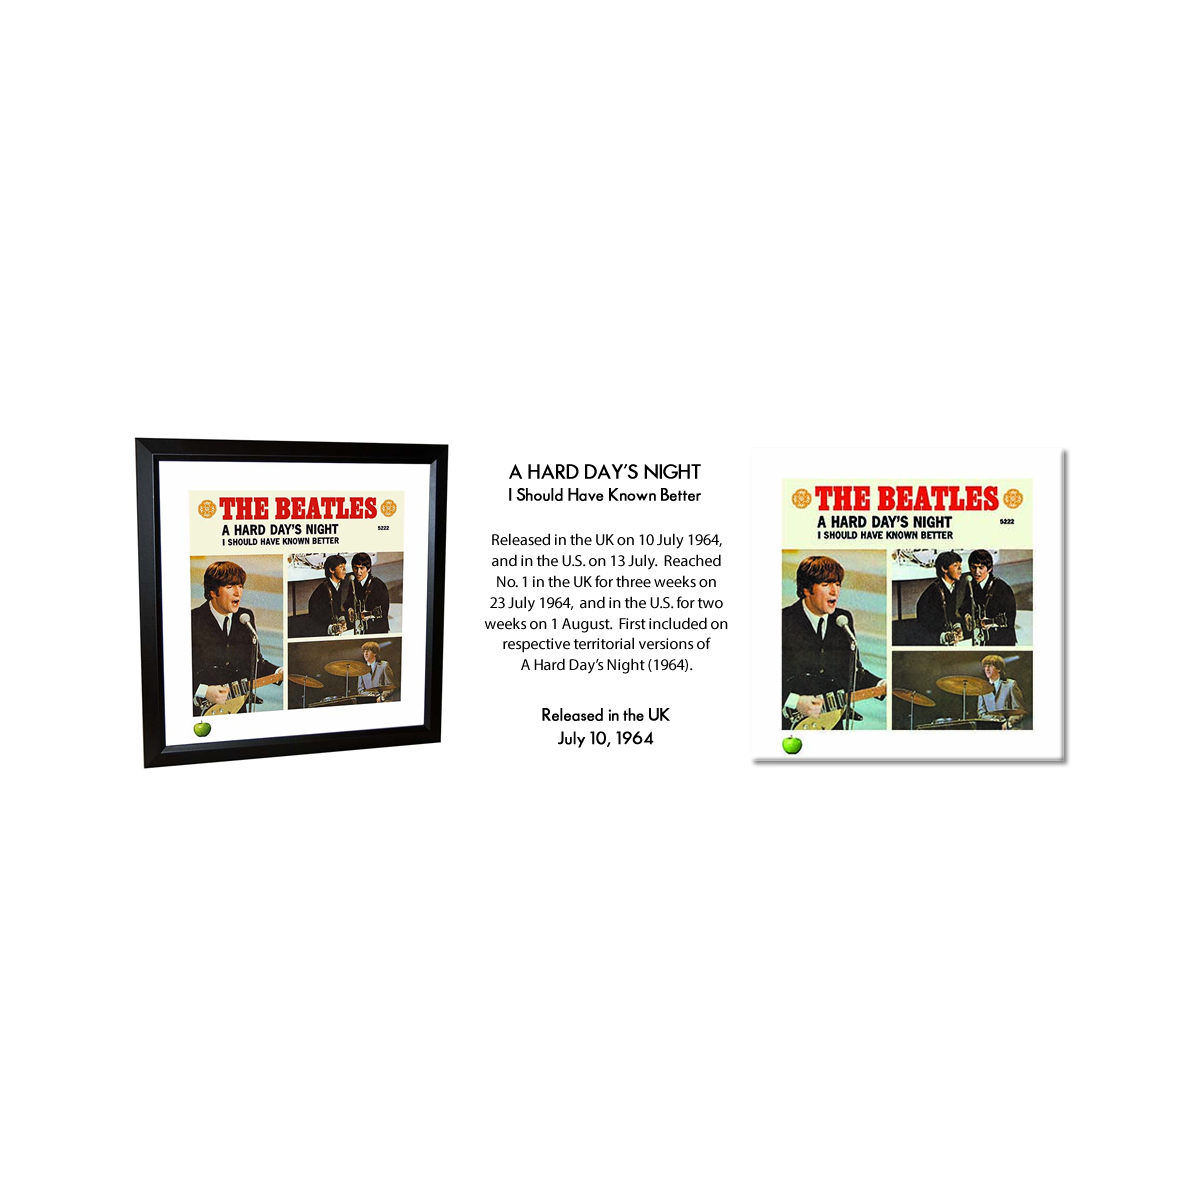 A Hard Day's Night Lithograph